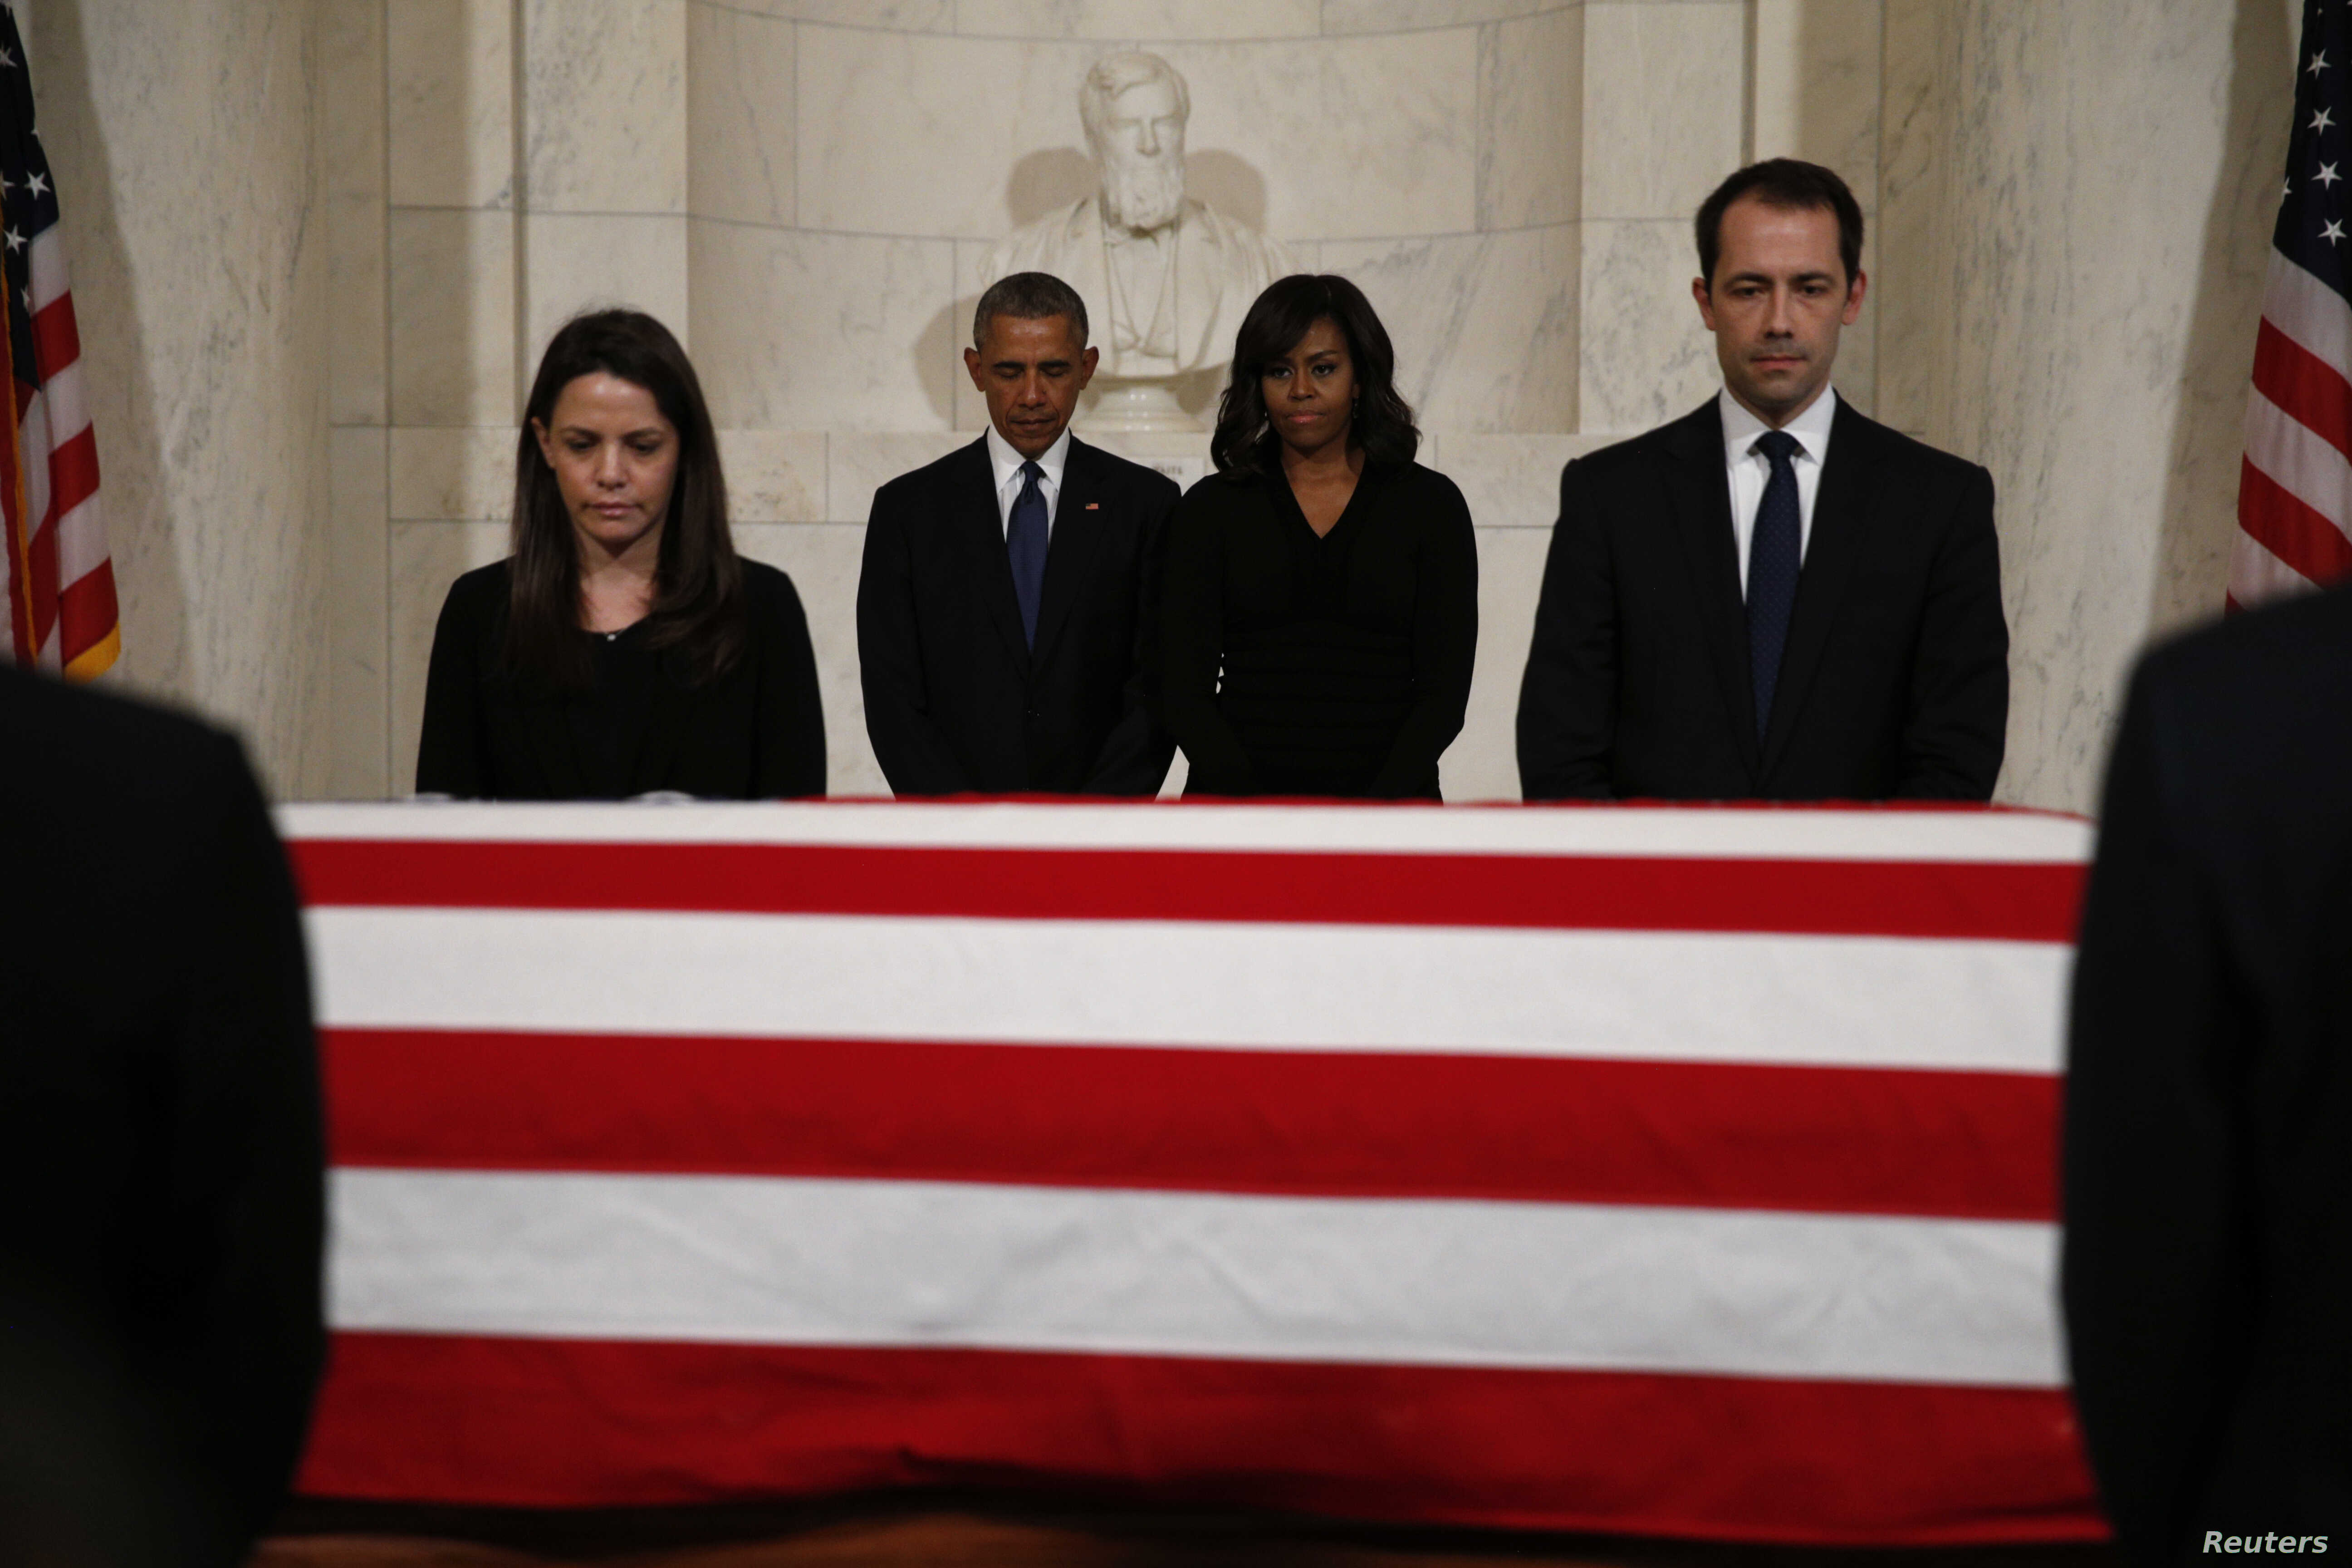 President Barack Obama, second from left, and first lady Michelle Obama, second from right, pay their respects at the casket of Supreme Court Justice Antonin Scalia in the Supreme Court's Great Hall in Washington, Feb. 19, 2016.